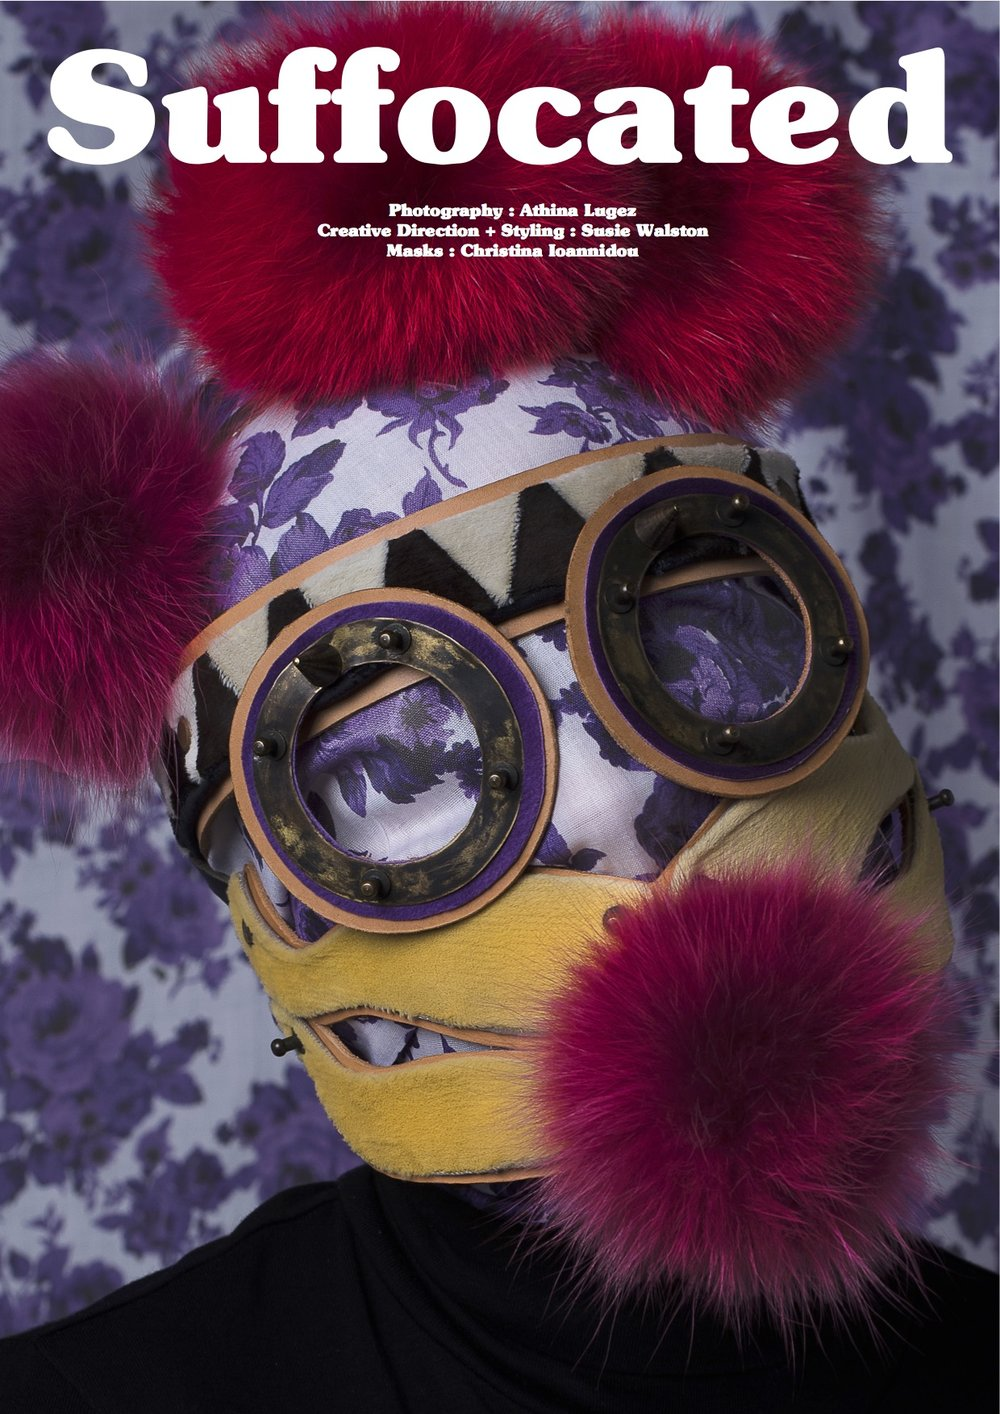 SUFFOCATED Photogrpahy Athina Lugez Styling & Creative direction Susie Walston Mask Rammellzee by Christina Ioannidou Prosopon collection